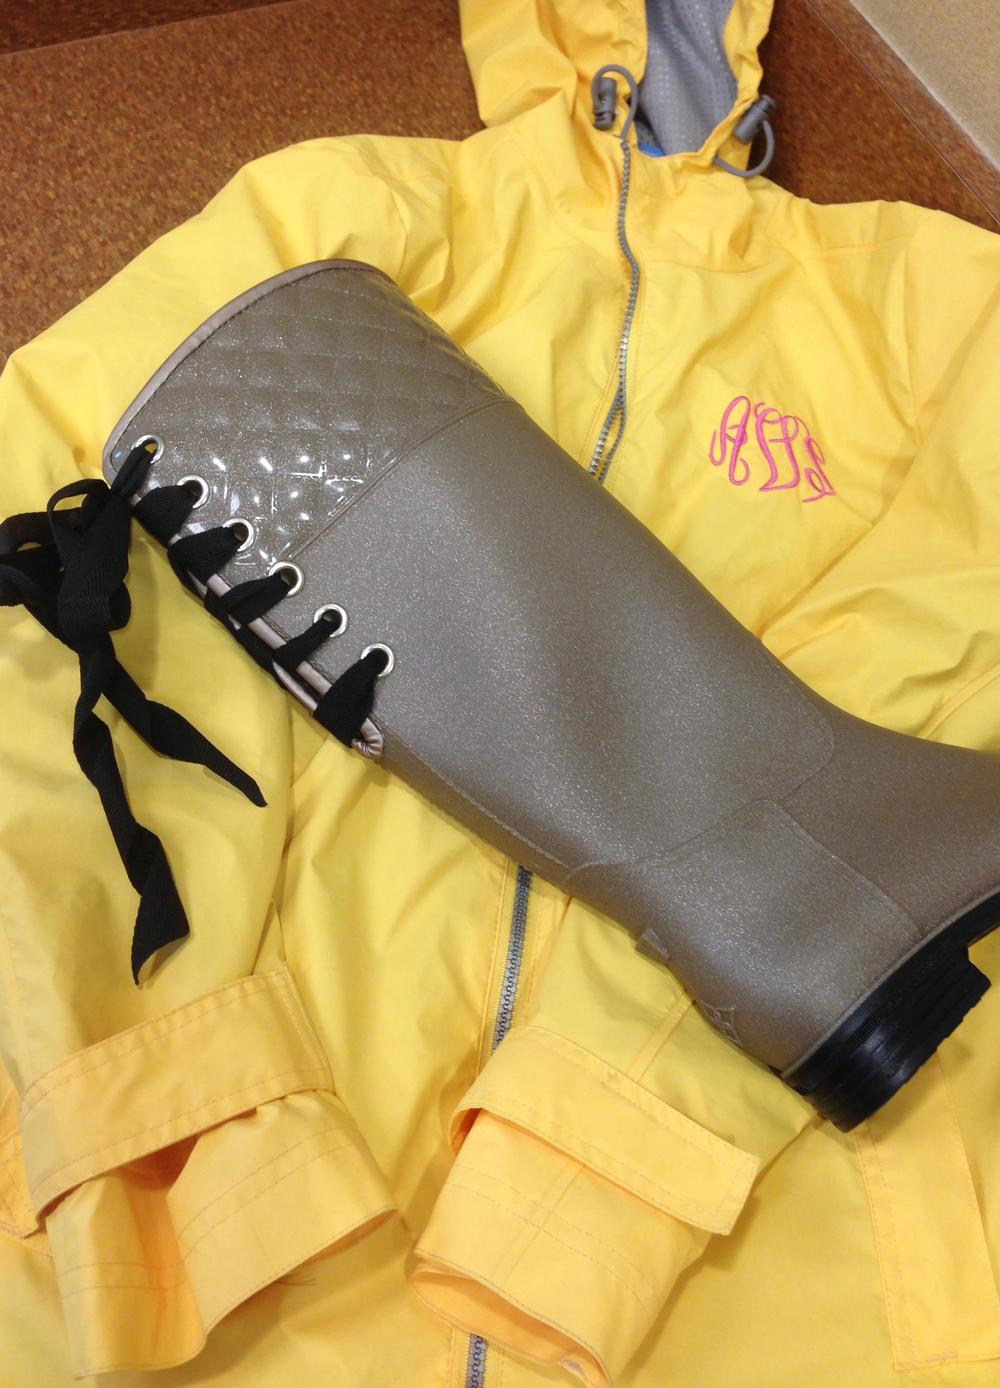 Monogrammed rain coat from Jewelry Nut Auctions. Rain boots from dav.